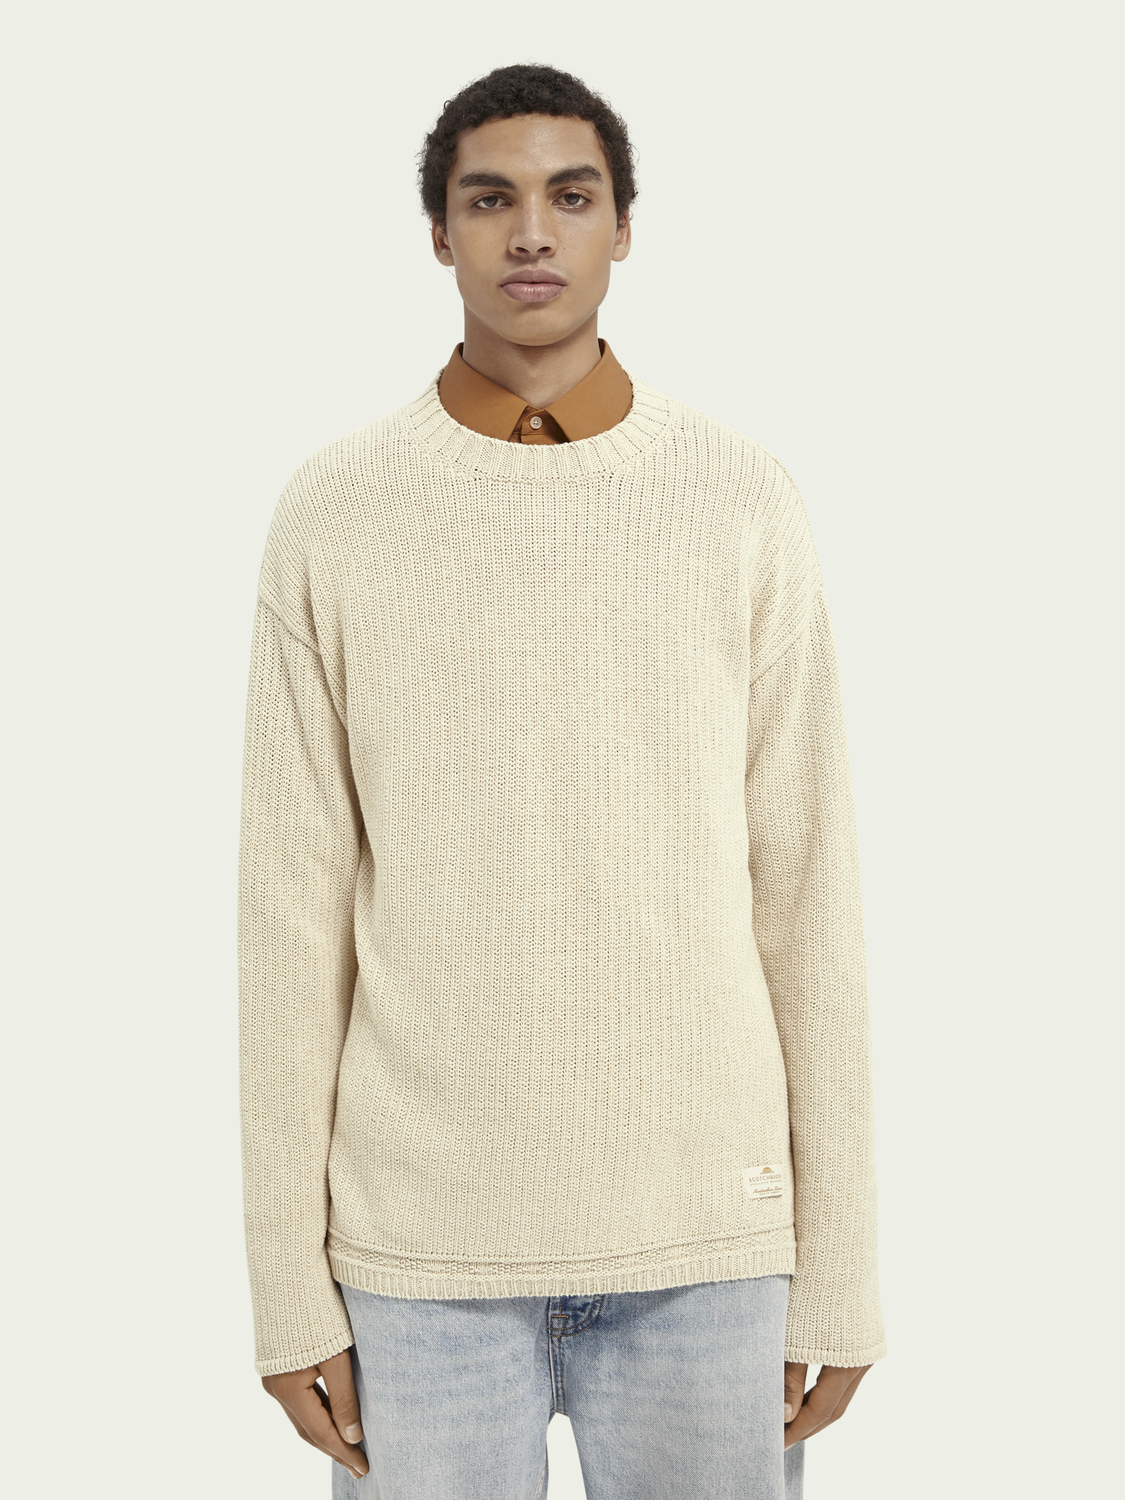 Men Structured knit recycled cotton blend sweater